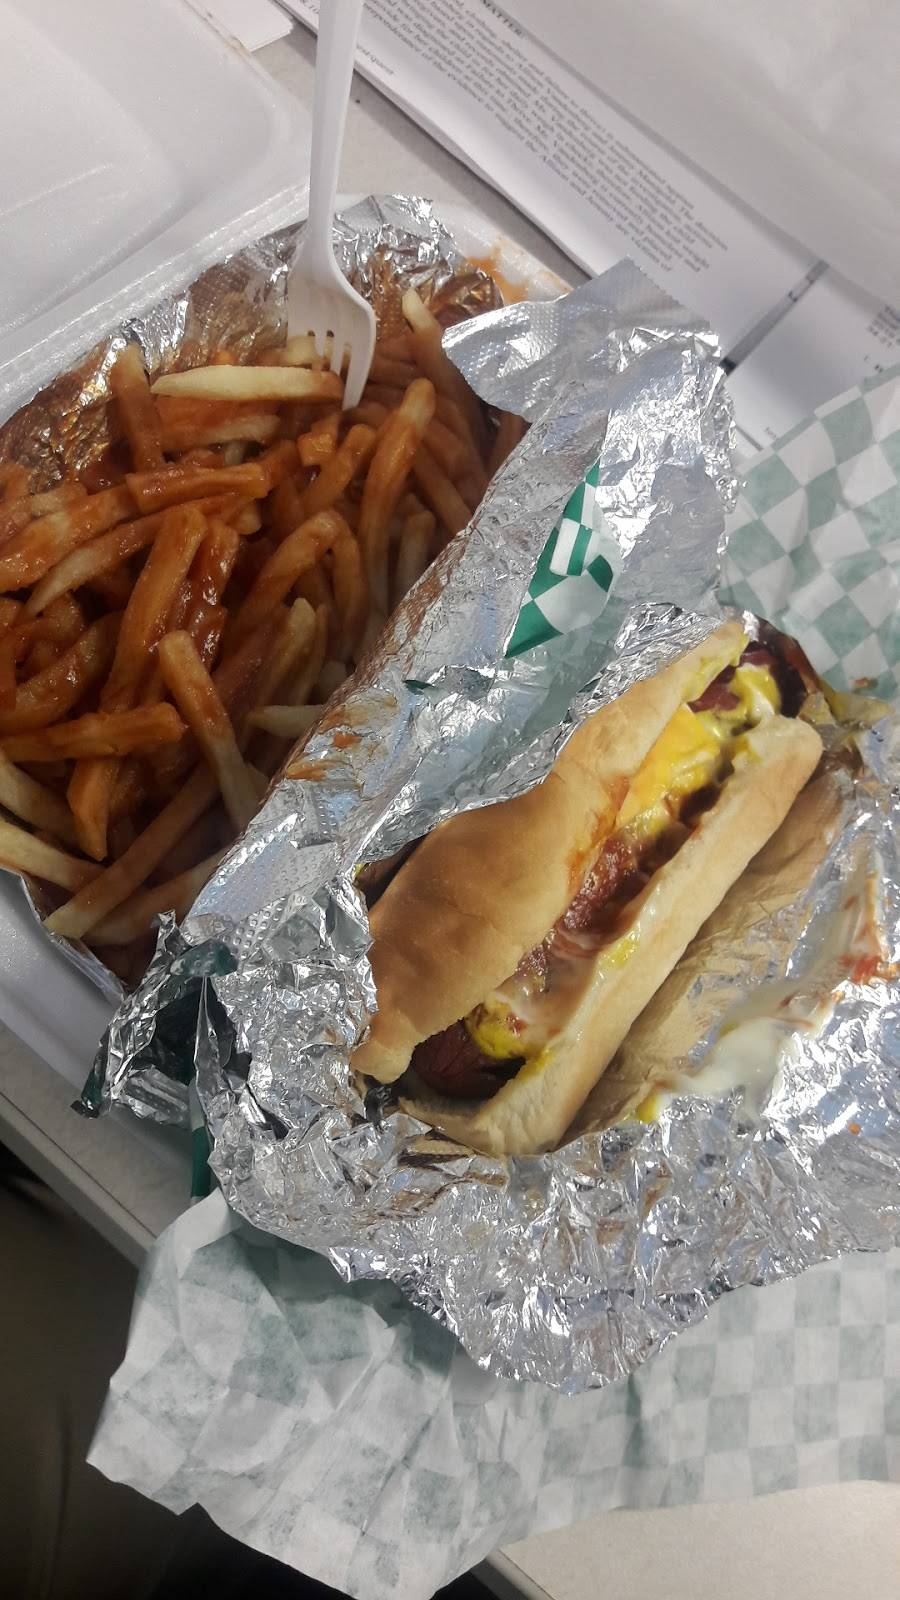 Tommys Philly Steak | restaurant | 2574 Broadway, Gary, IN 46407, USA | 2199510312 OR +1 219-951-0312